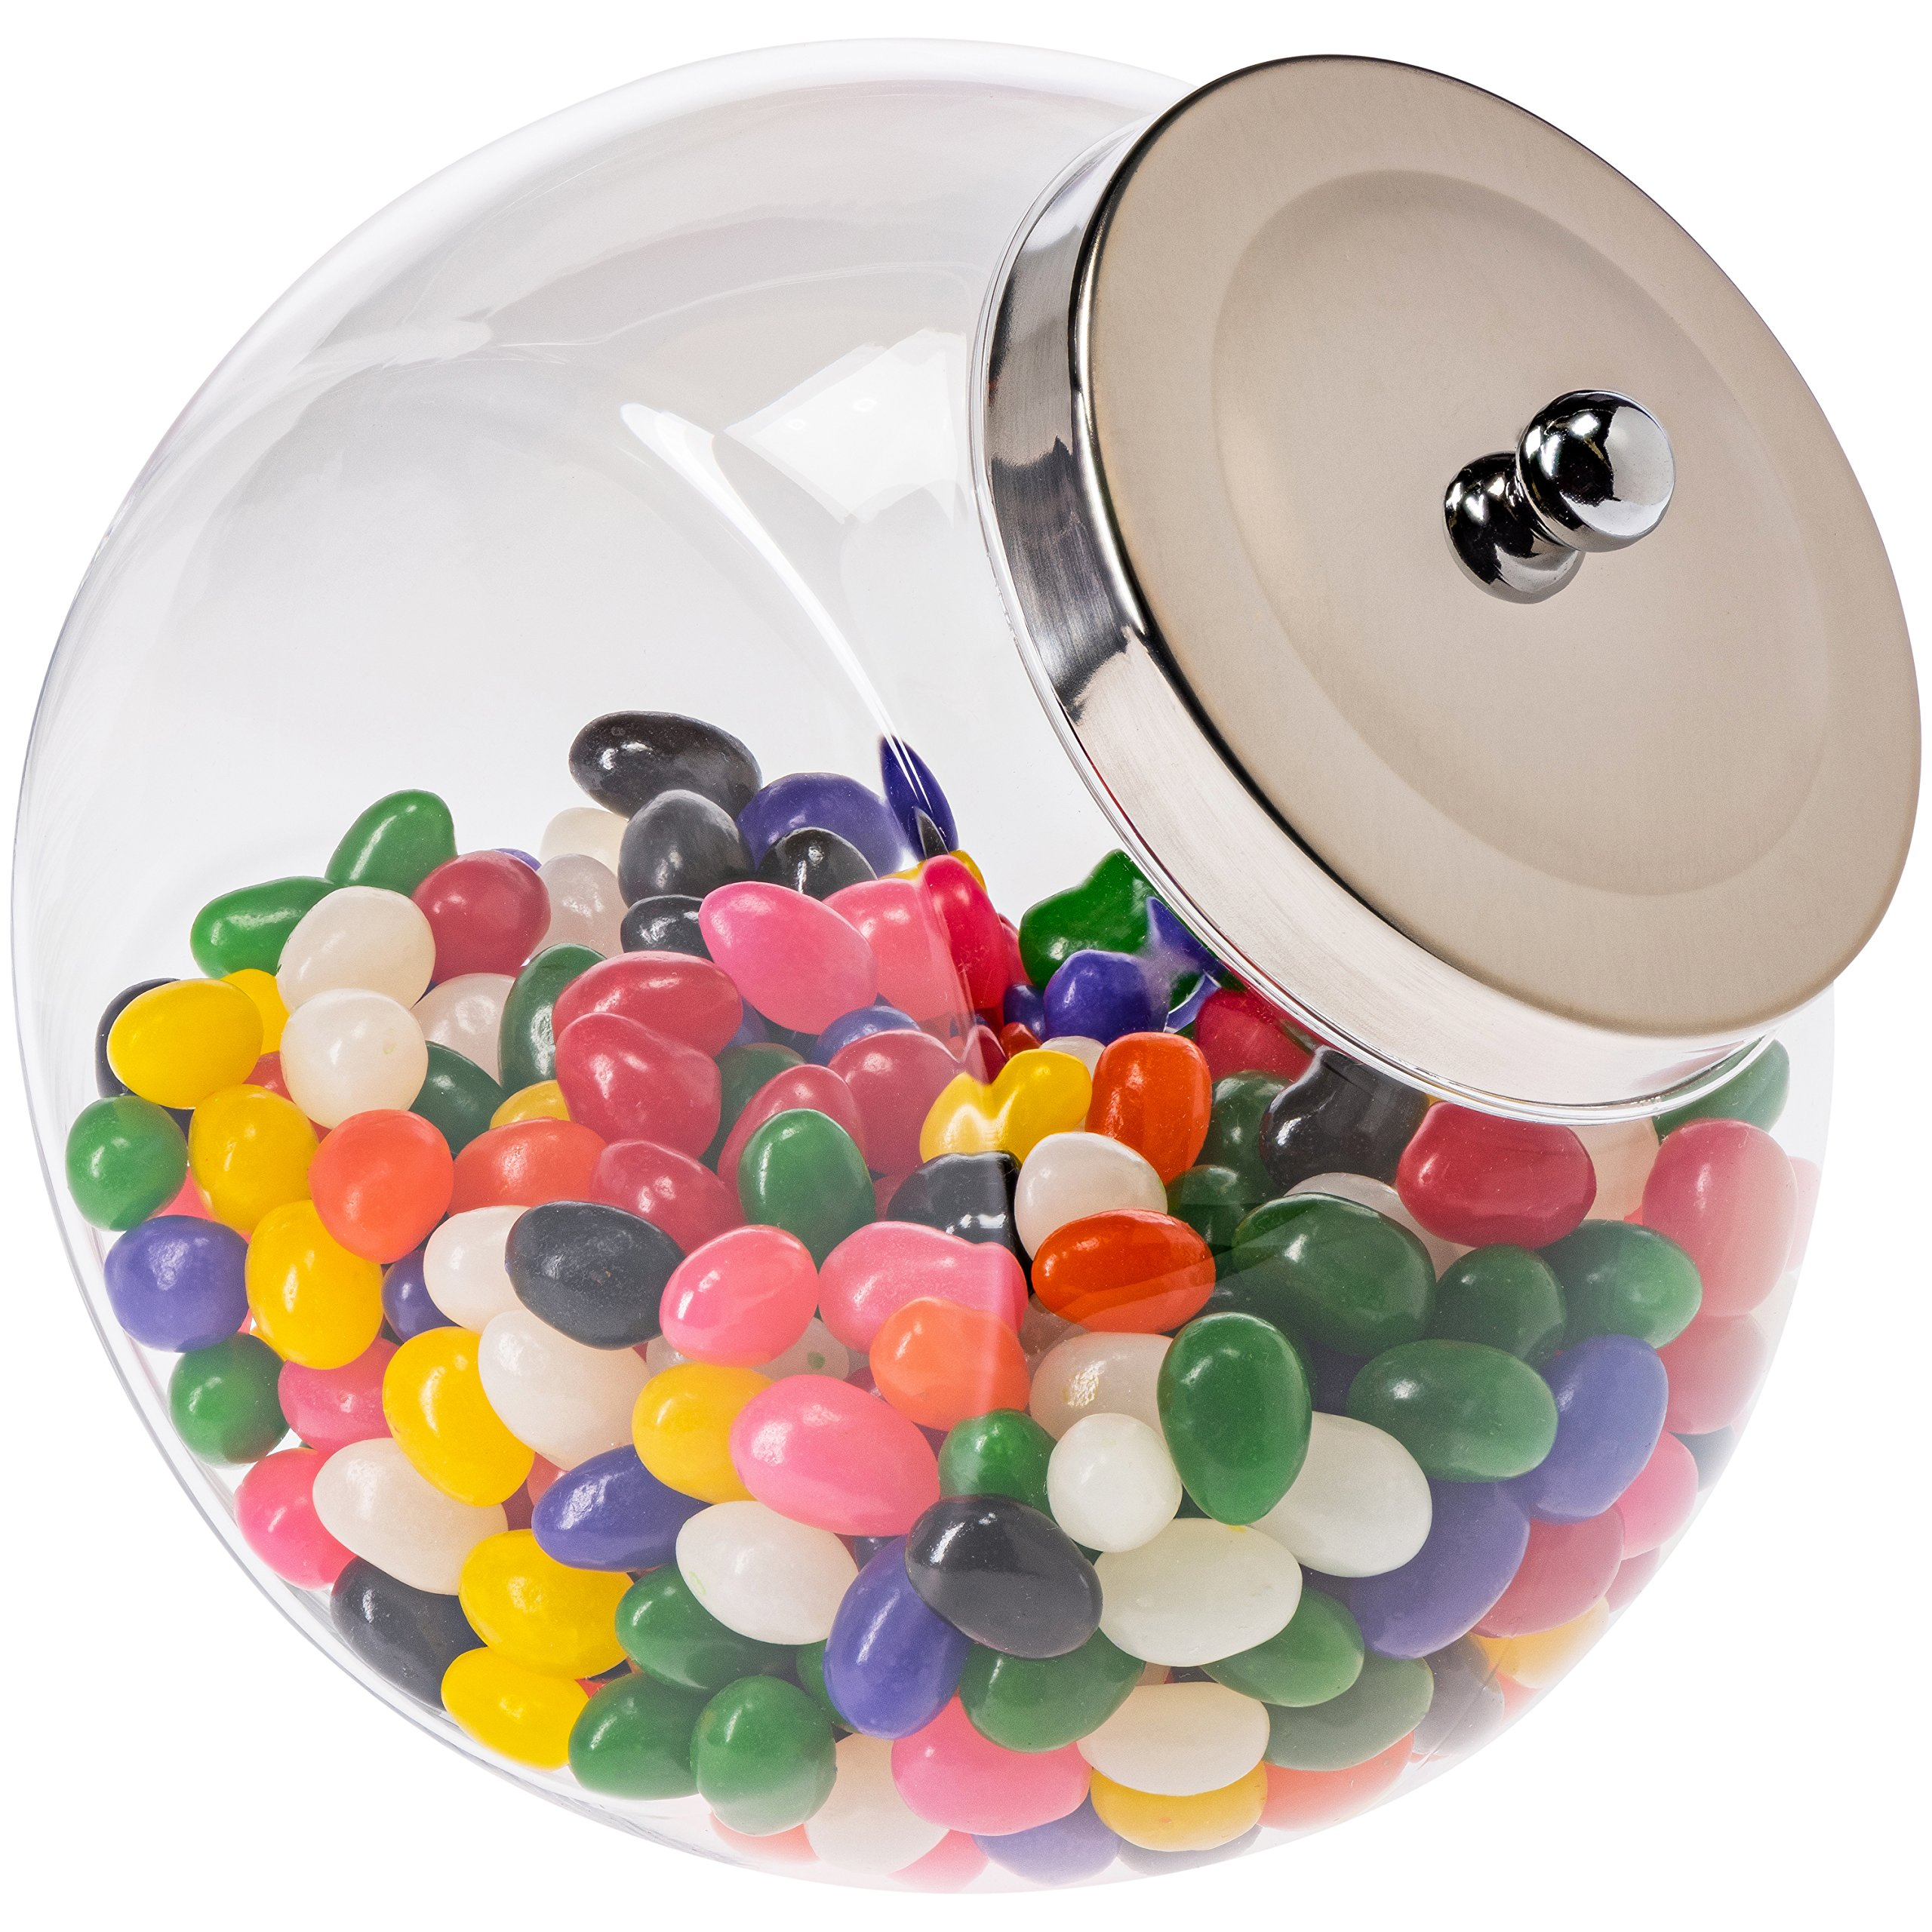 Penny Candy Jar with Lid - Acrylic Penny Candy Jar